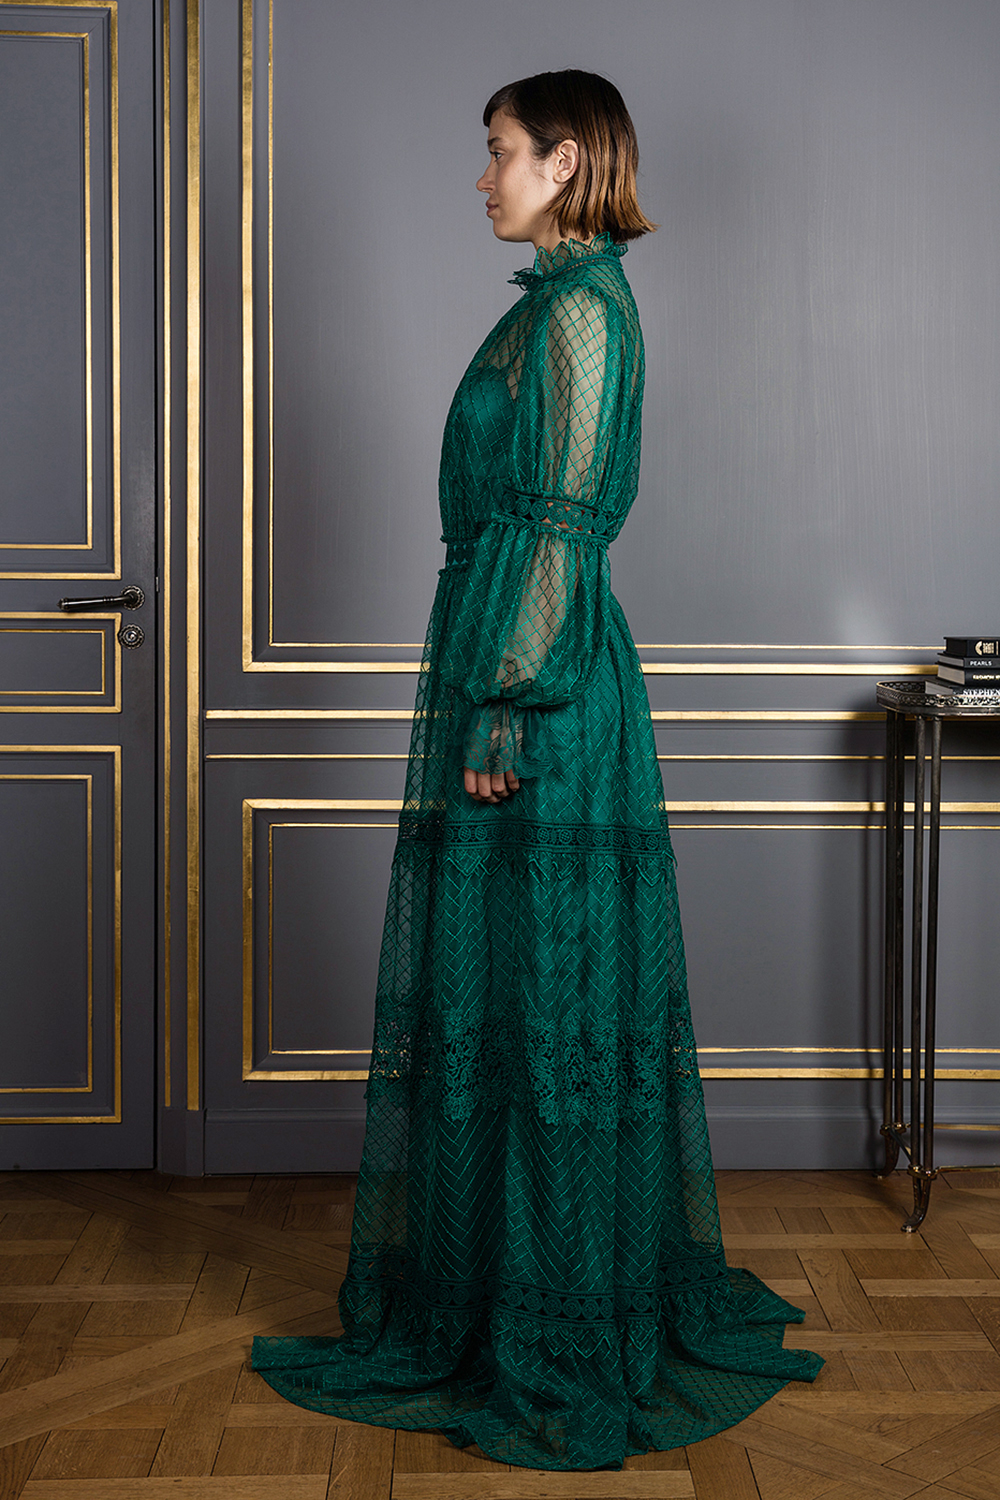 Floor-length green dress